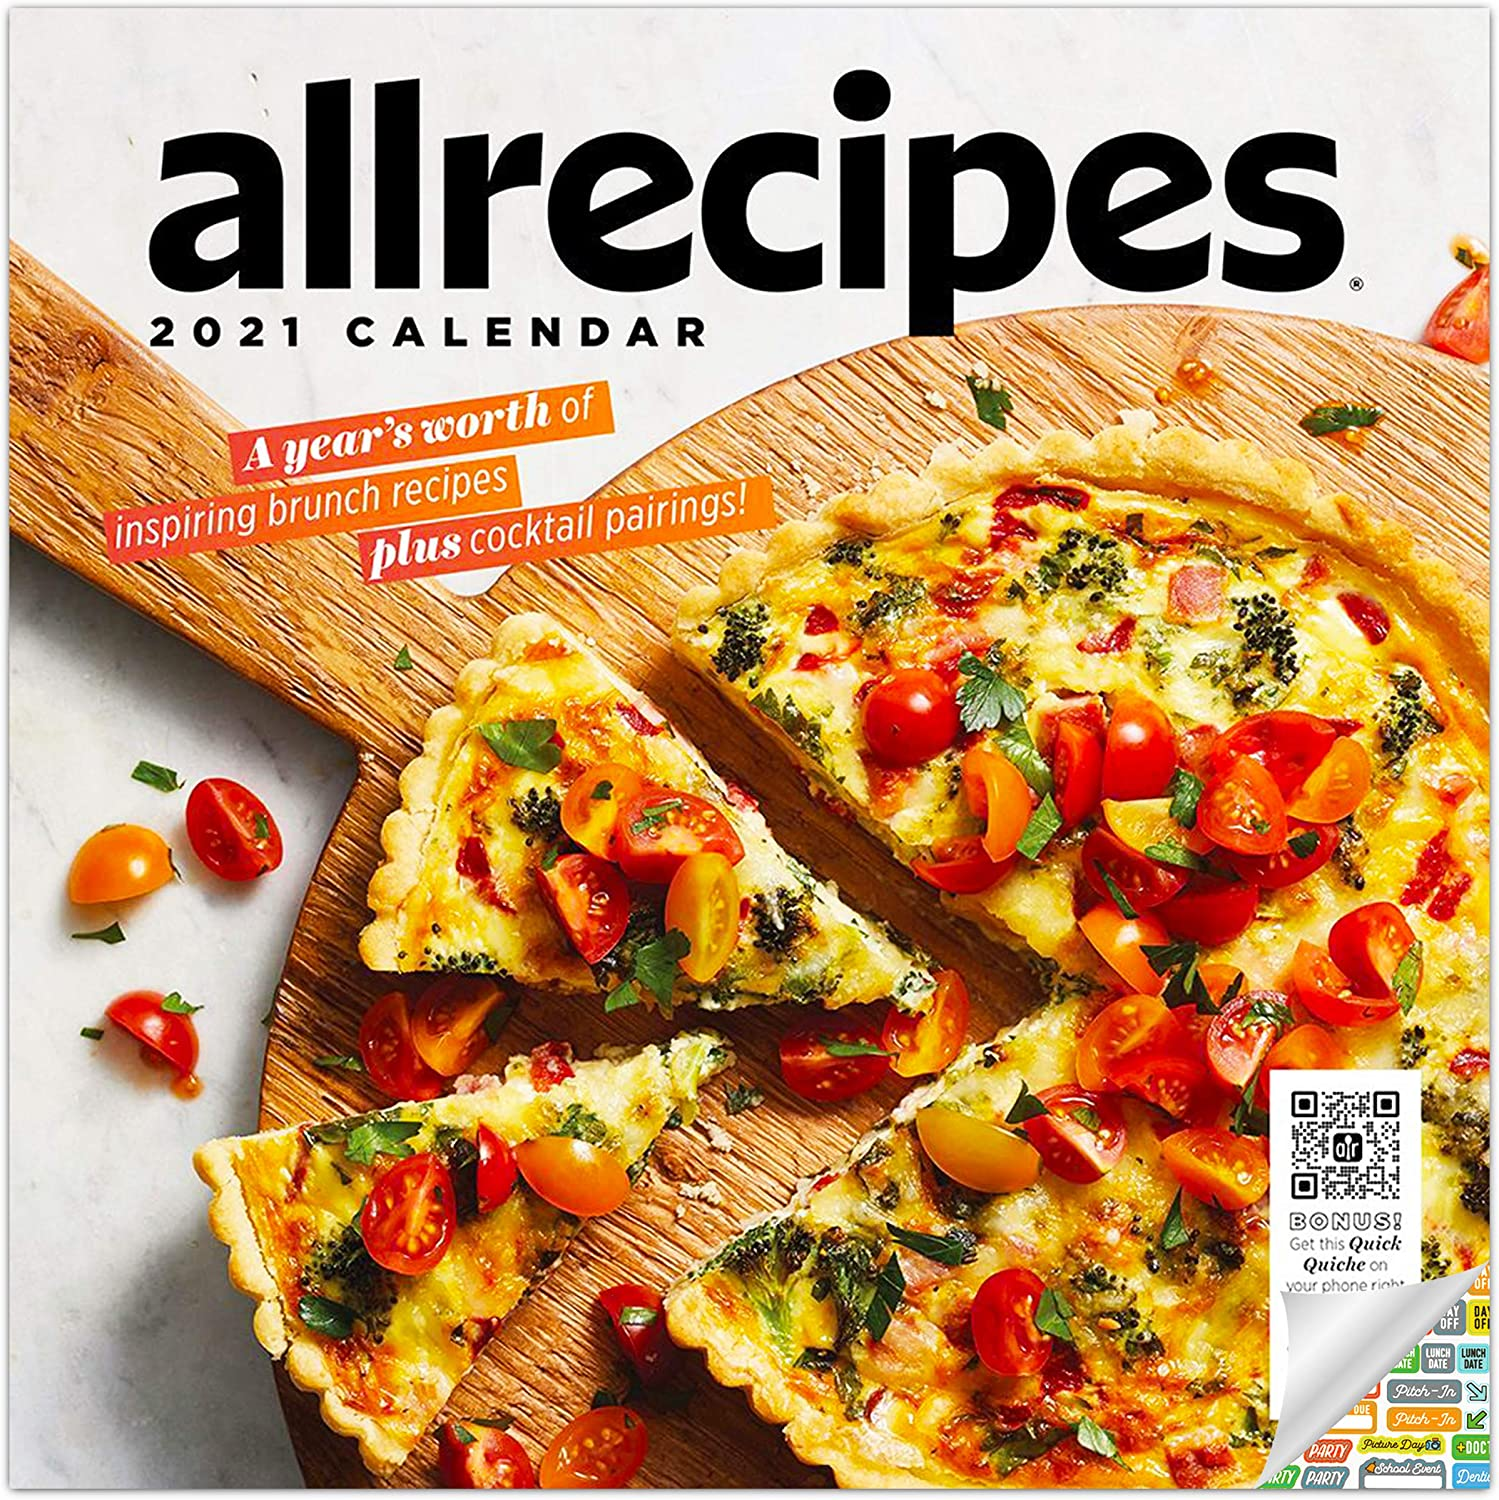 All recopies - Brunch Recipes Calendar 2021 Bundle - Deluxe 2021 Cooking Wall Calendar with Over 100 Calendar Stickers (Cooking Gifts, Office Supplies)